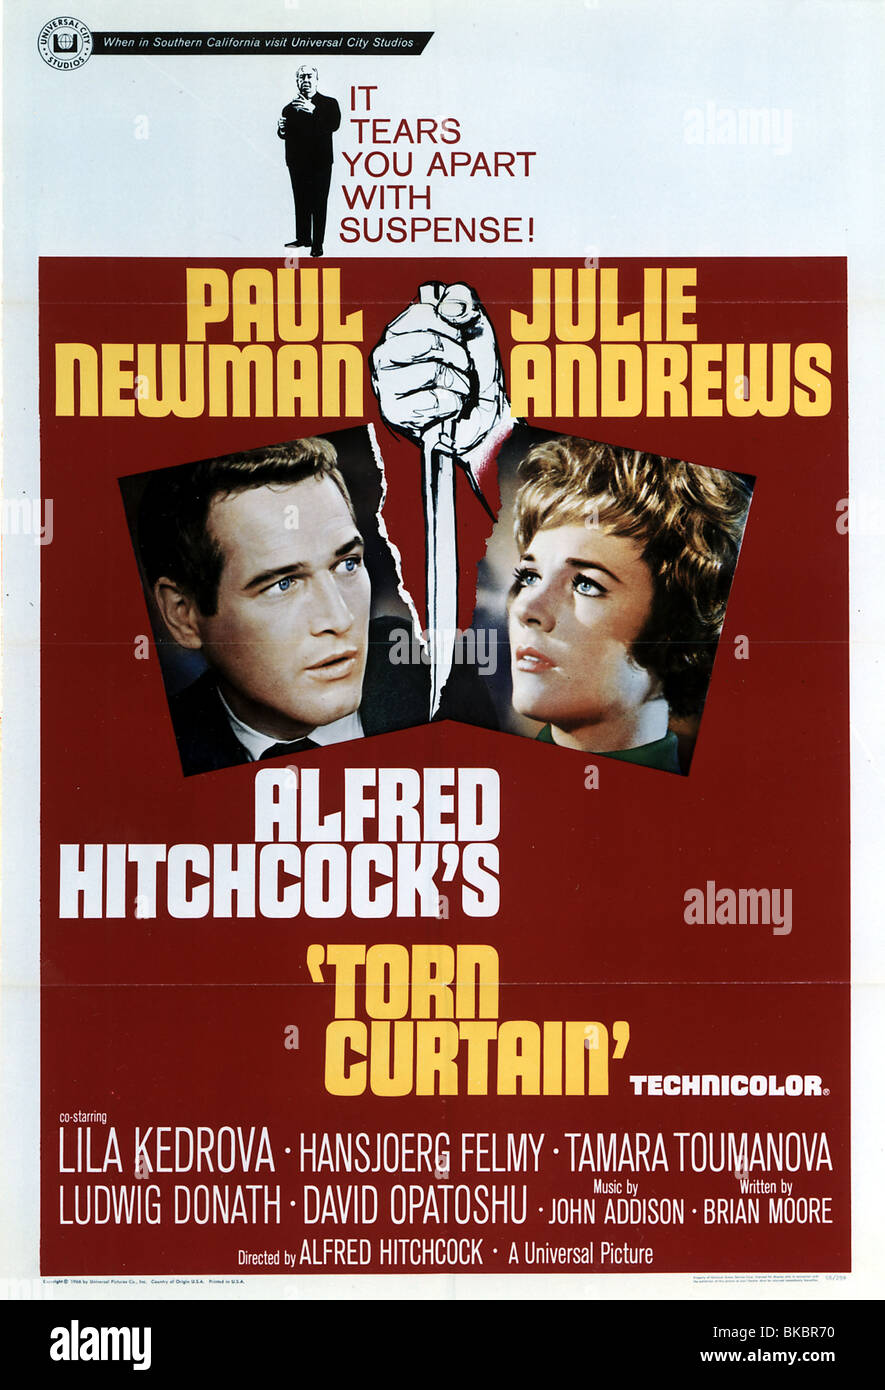 Torn curtain julie andrews - Stock Photo Torn Curtain 1966 Paul Newman Julie Andrews Poster Trct 001cp